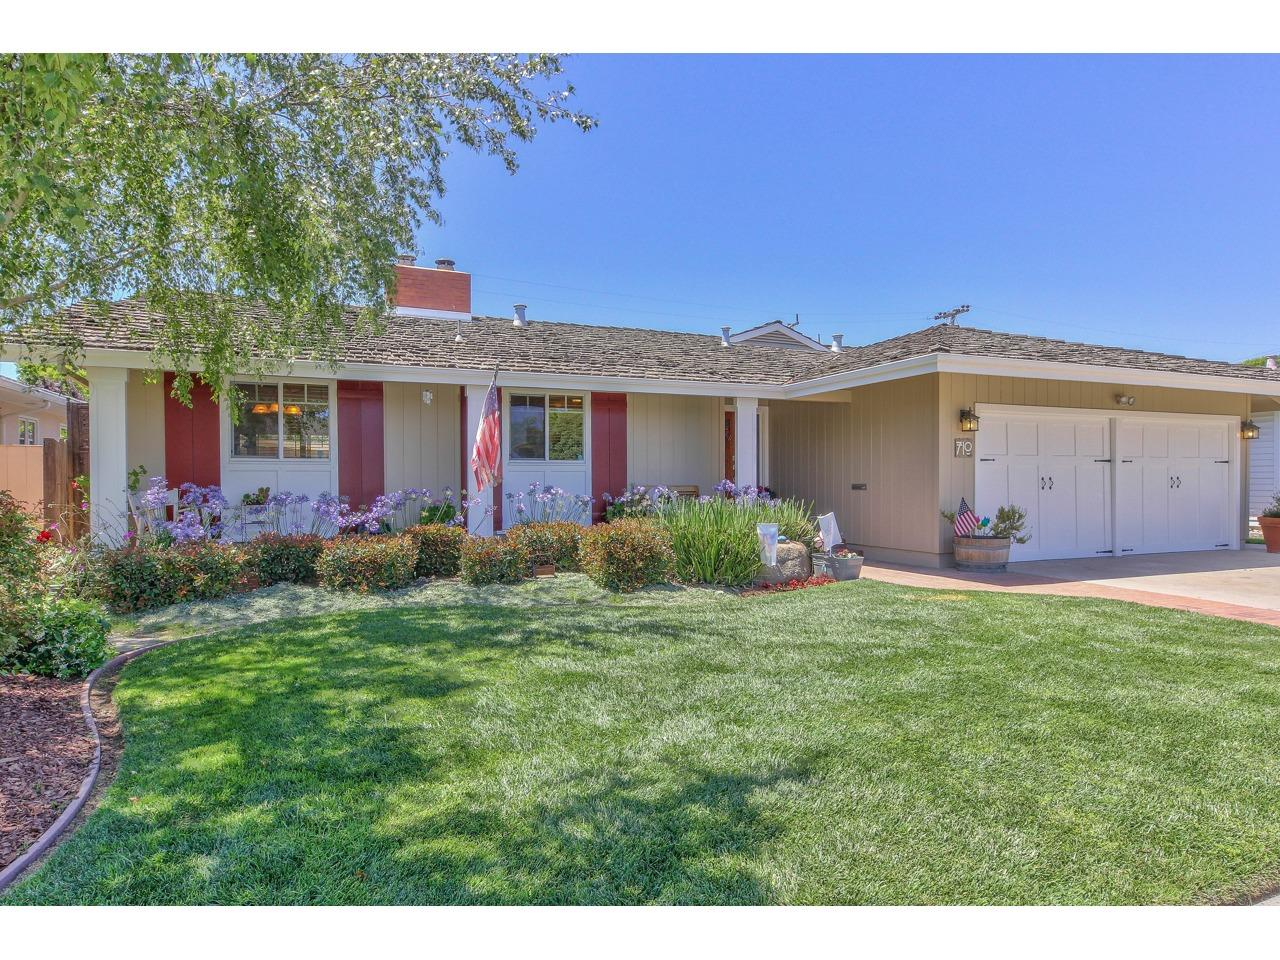 Detail Gallery Image 1 of 36 For 710 Marion Ave, Salinas, CA 93901 - 4 Beds | 2 Baths